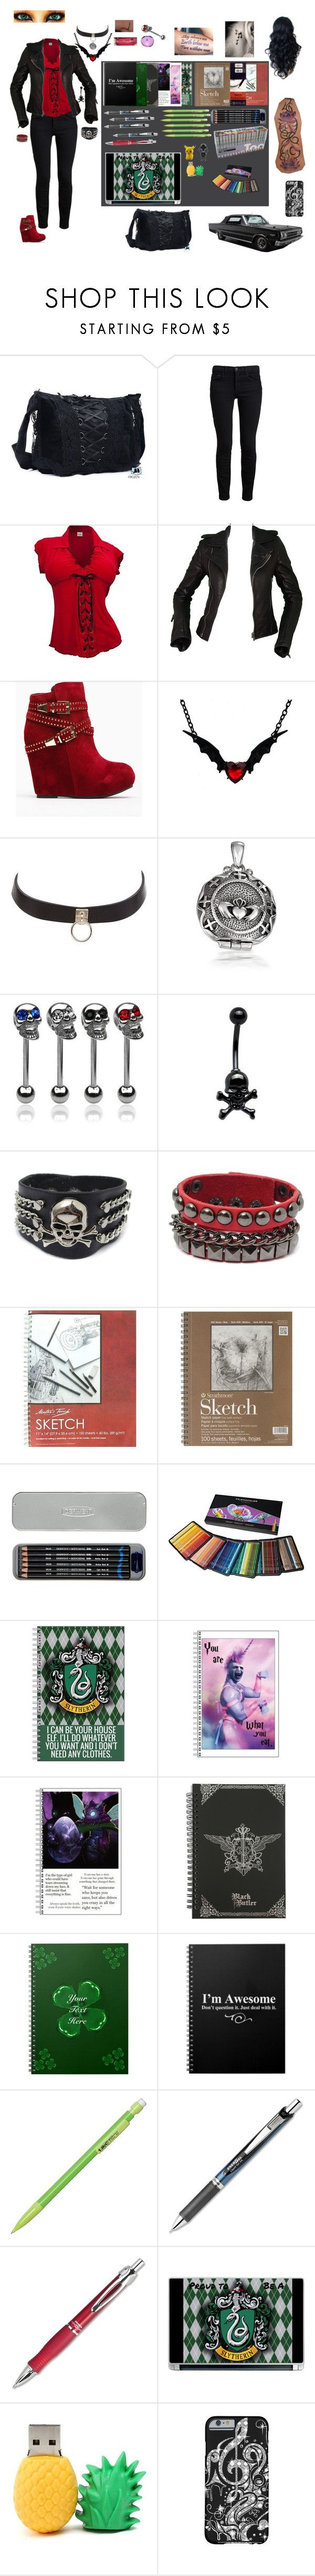 """""""Belinda Swan (Twilight Fic OC) Emmett Cullen's Mate"""" by evil-unicorn90 ❤ liked on Polyvore featuring Belvedere, CO, Proenza Schouler, Balenciaga, Charlotte Russe, Bling Jewelry, Universal, Hot Topic, Meco and Music Notes"""